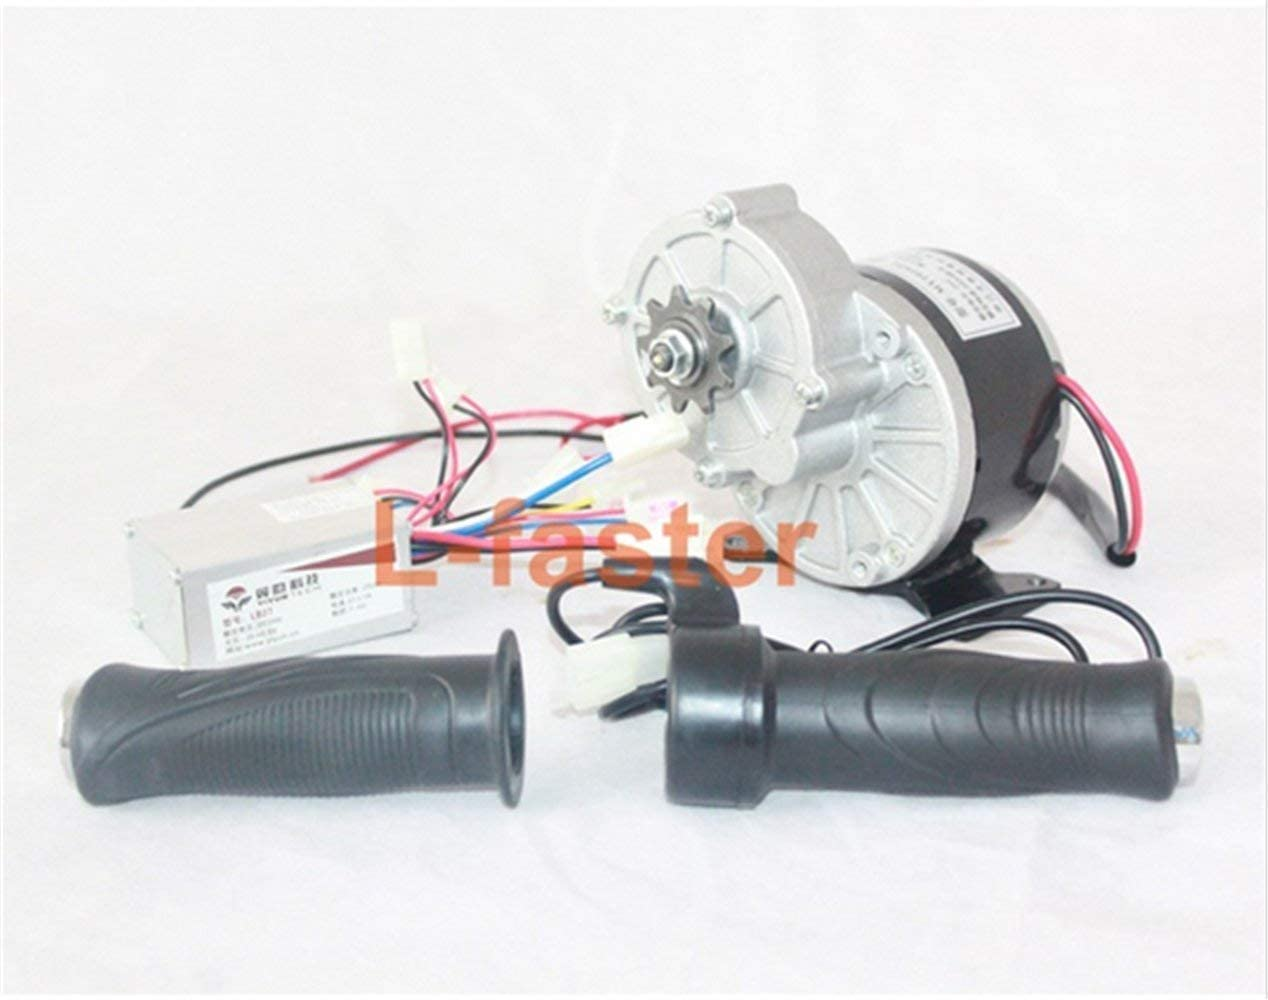 scooter 24V 250W Electric DC Motor + Controller + Throttle Electric Bike Brush Motor Conversion Kit Electric Motor kit